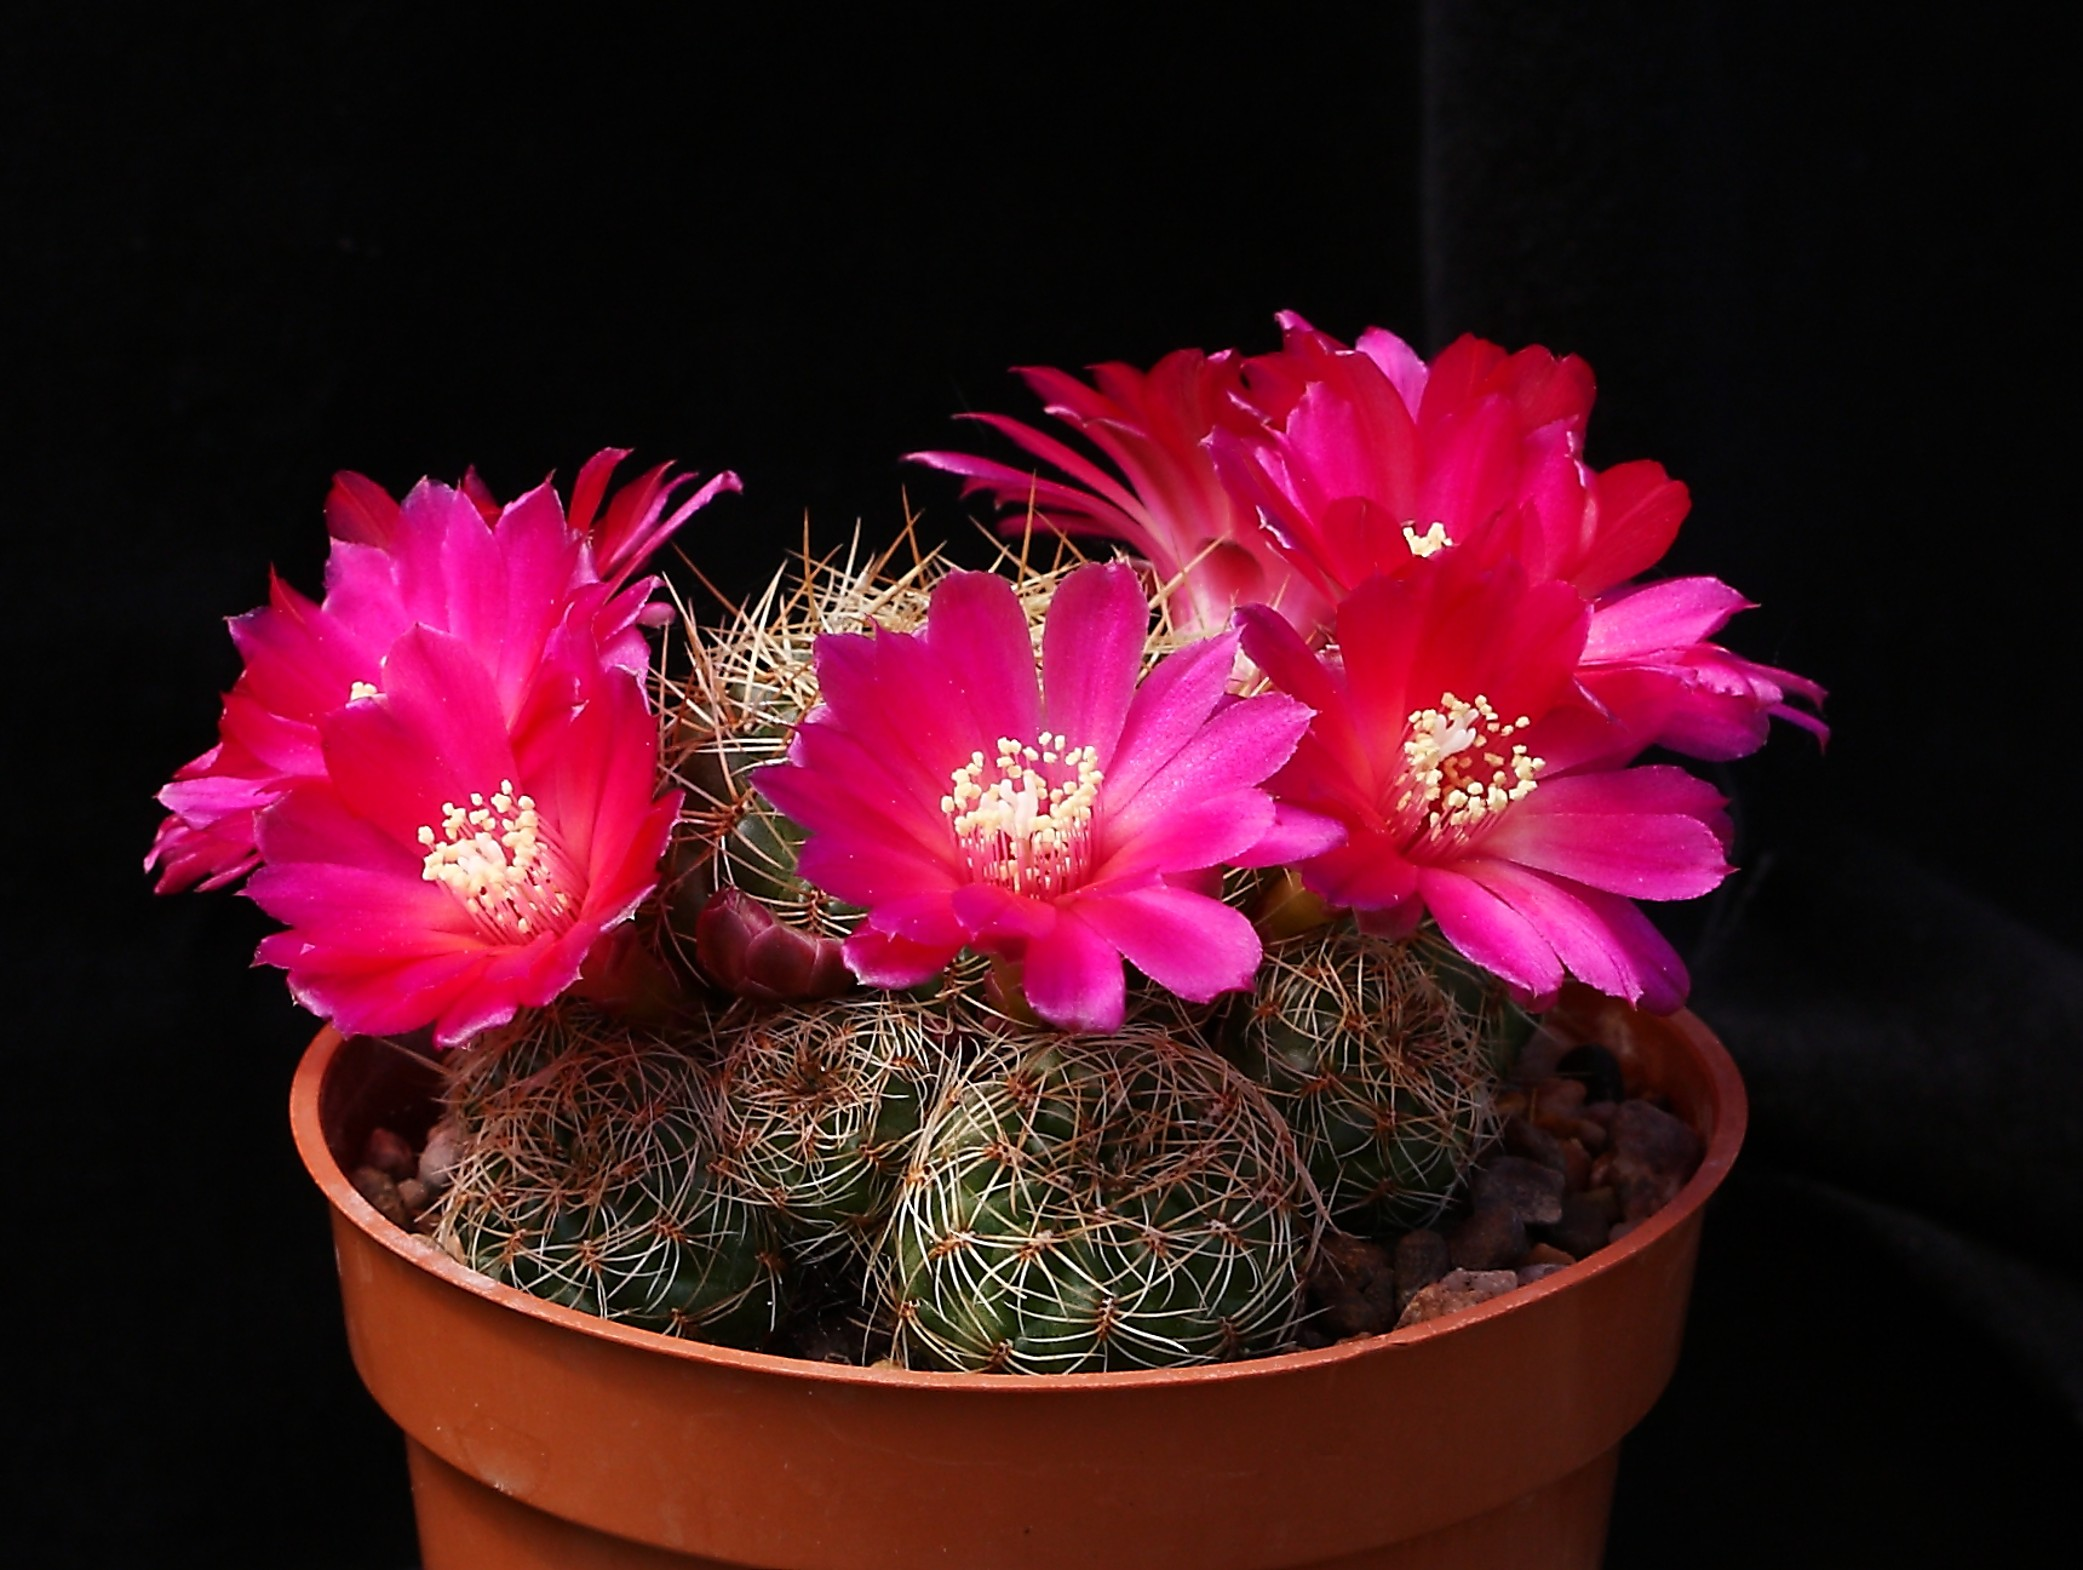 Sulcorebutia canigueralii flowers 17 May 2014.JPG